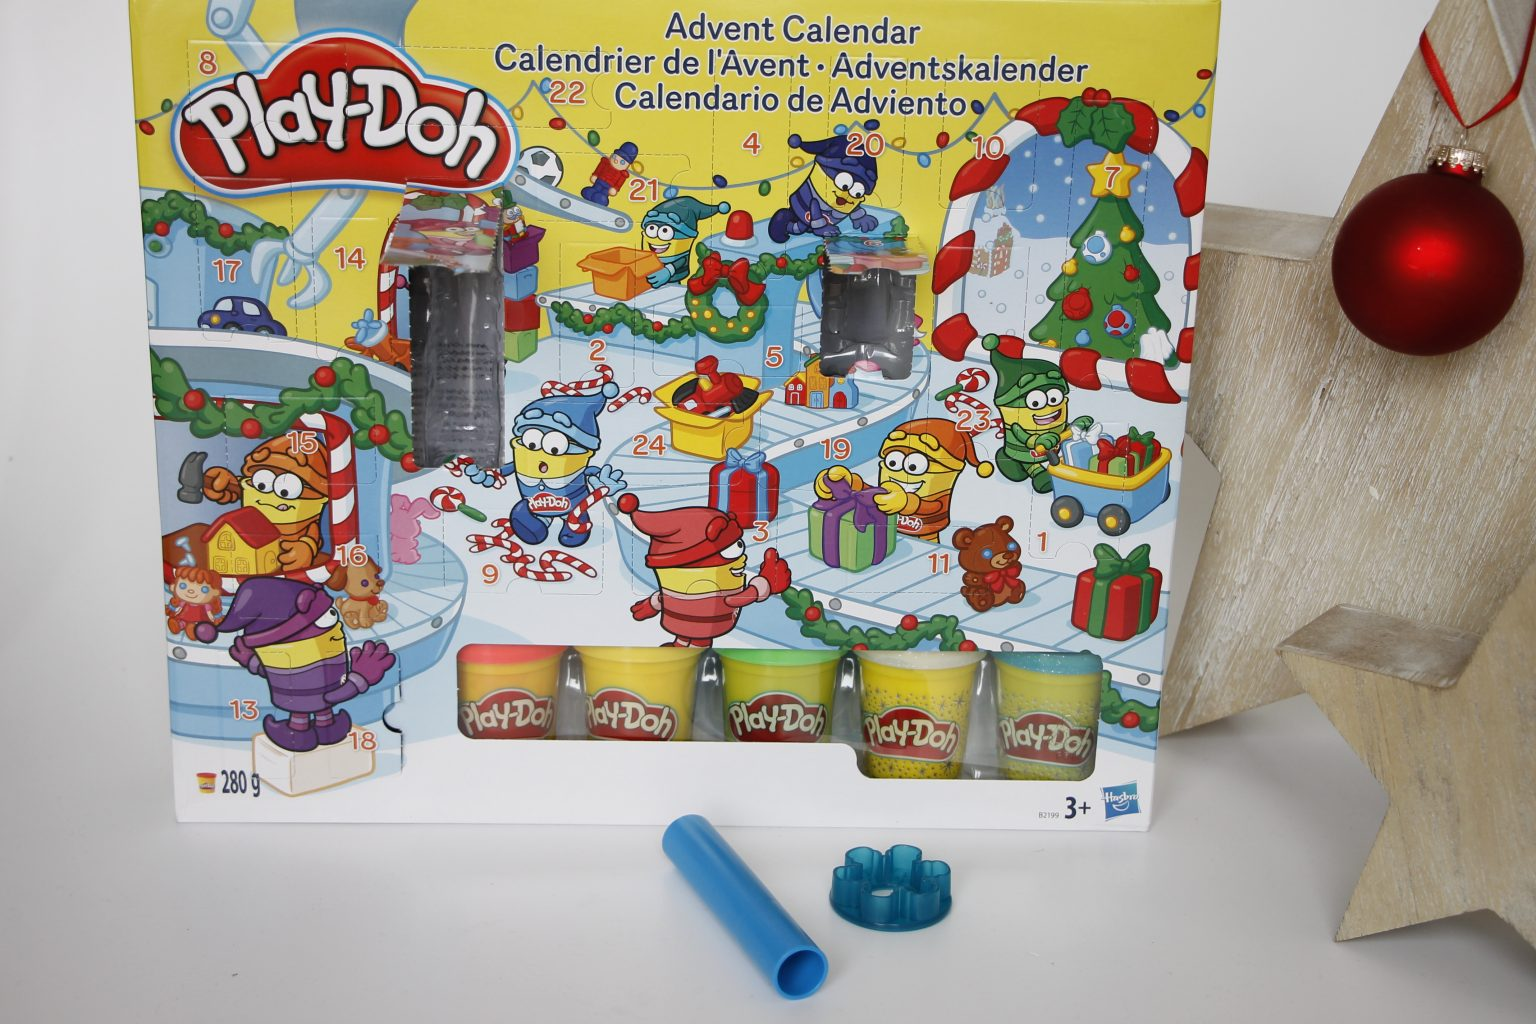 Play-Doh Adventskalender Inhalt